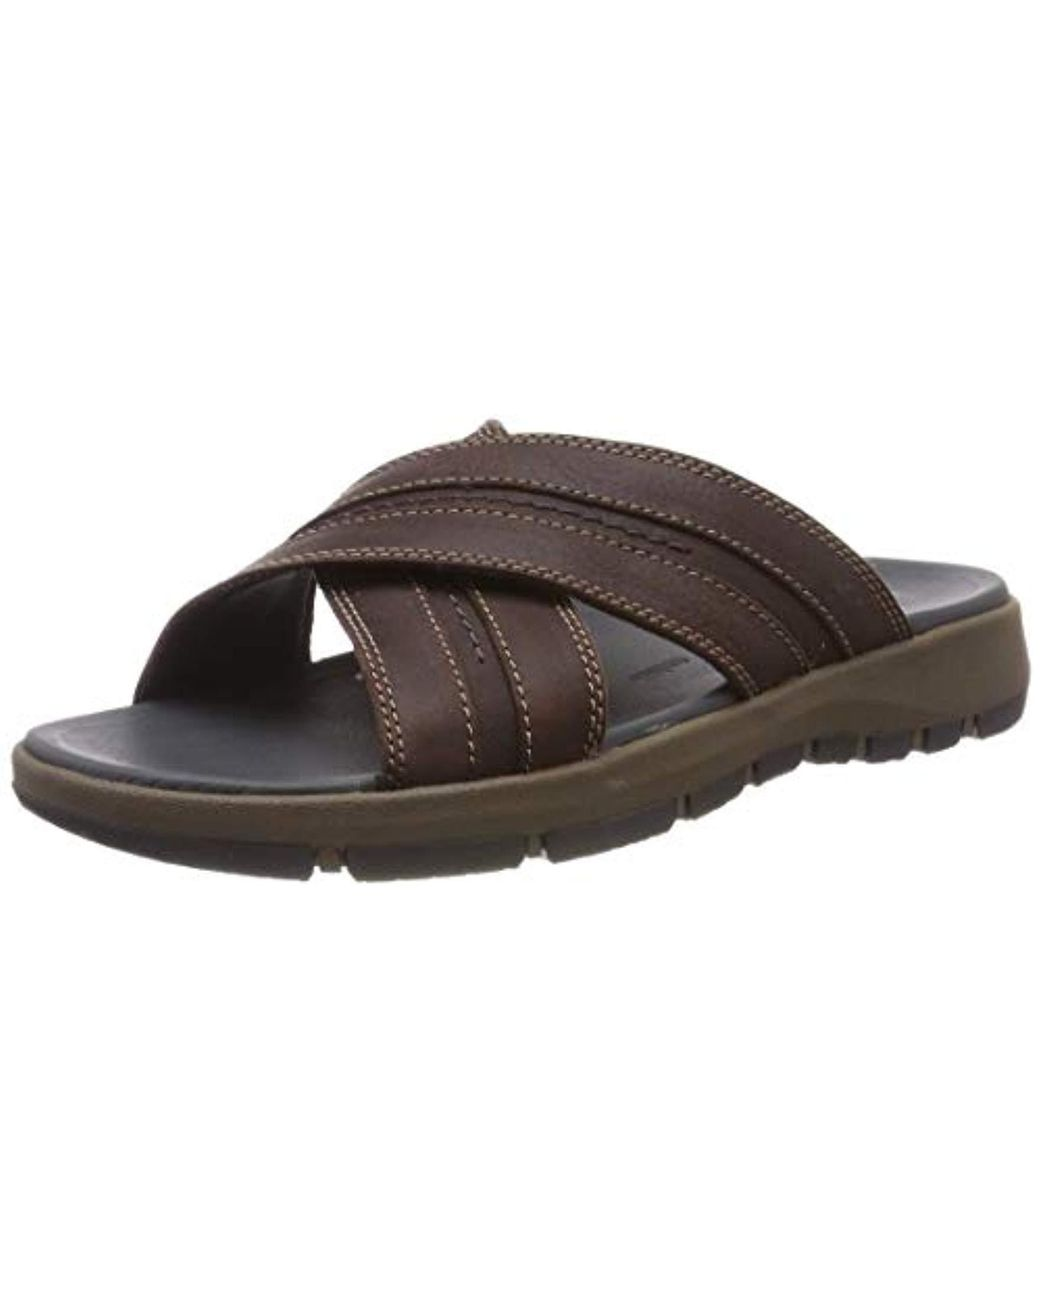 6f63c6f34f8 Clarks Brixby Cross Ankle Strap Sandals in Brown for Men - Lyst